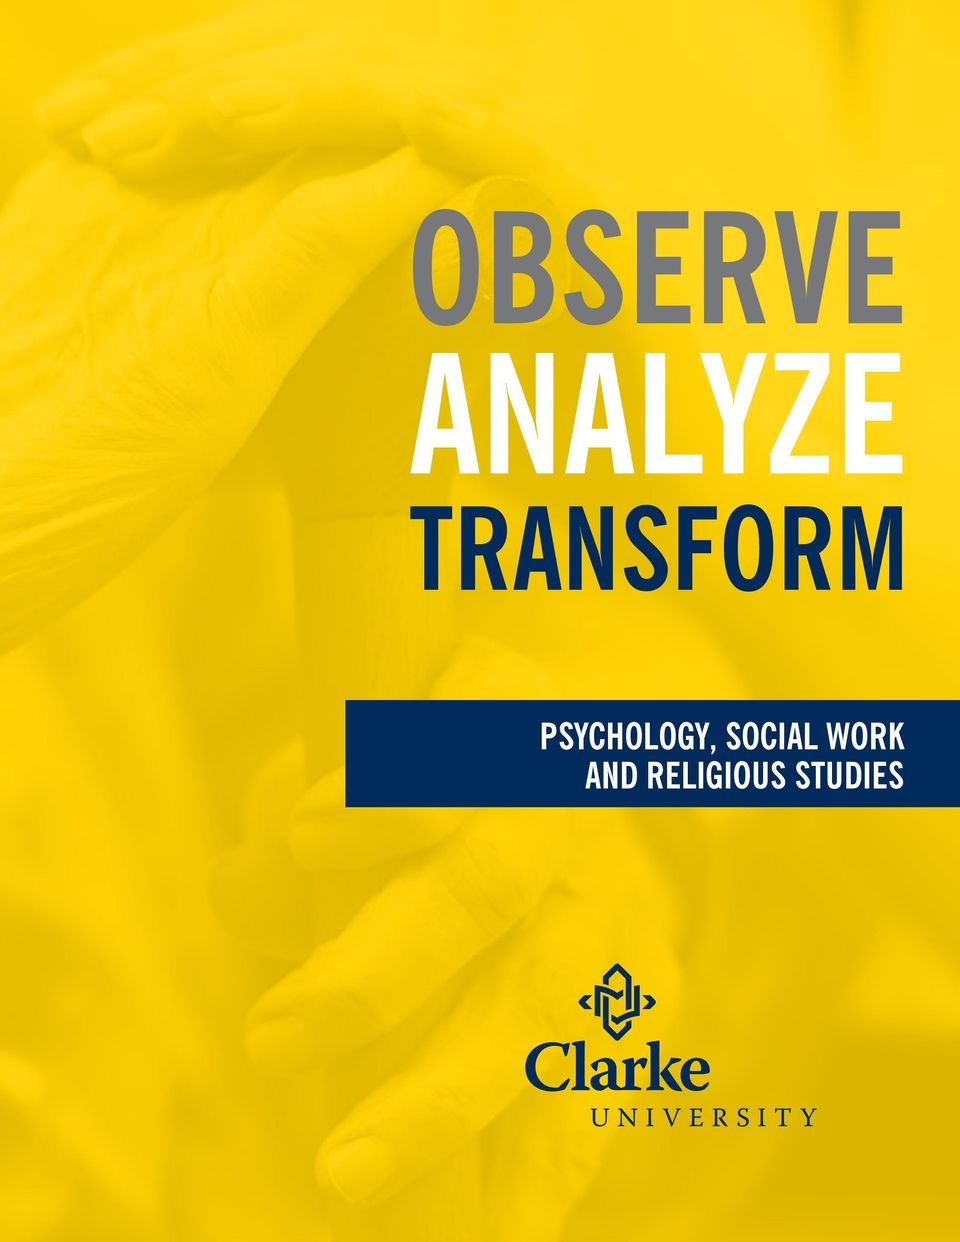 Observe Analyze Transform Psychology, Social Work And. Best Engineering Schools In North Carolina. Is Hemophilia Recessive Or Dominant. Best Free Network Monitoring Tools. Willard Drug Treatment Campus. Accrediting Commission International. Small Business Lead Generation. Software Development Small Business. Home Security Leads For Sale